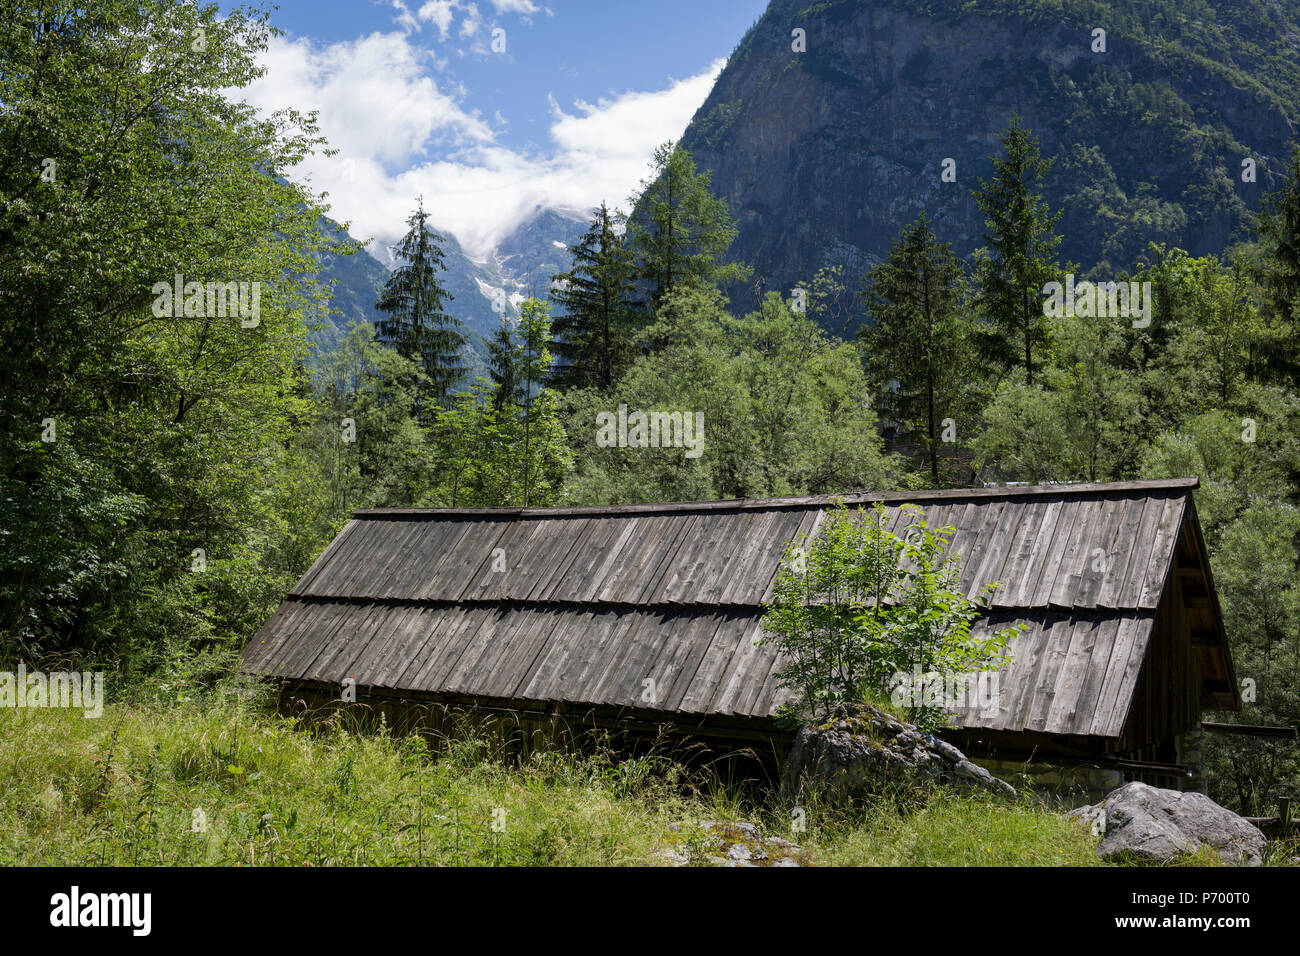 With the highest peaks in Slovenia in the distance is a traditional Slovenian mountain hut in the Slovenian Julian Alps, on 22nd June 2018, in Trenta, Triglav National Park, Slovenia. Beyond are the mountains, Kreiski 2050m, Pihavec 2419m, Dolina Zadnjica and Triglav 2864m. Stock Photo